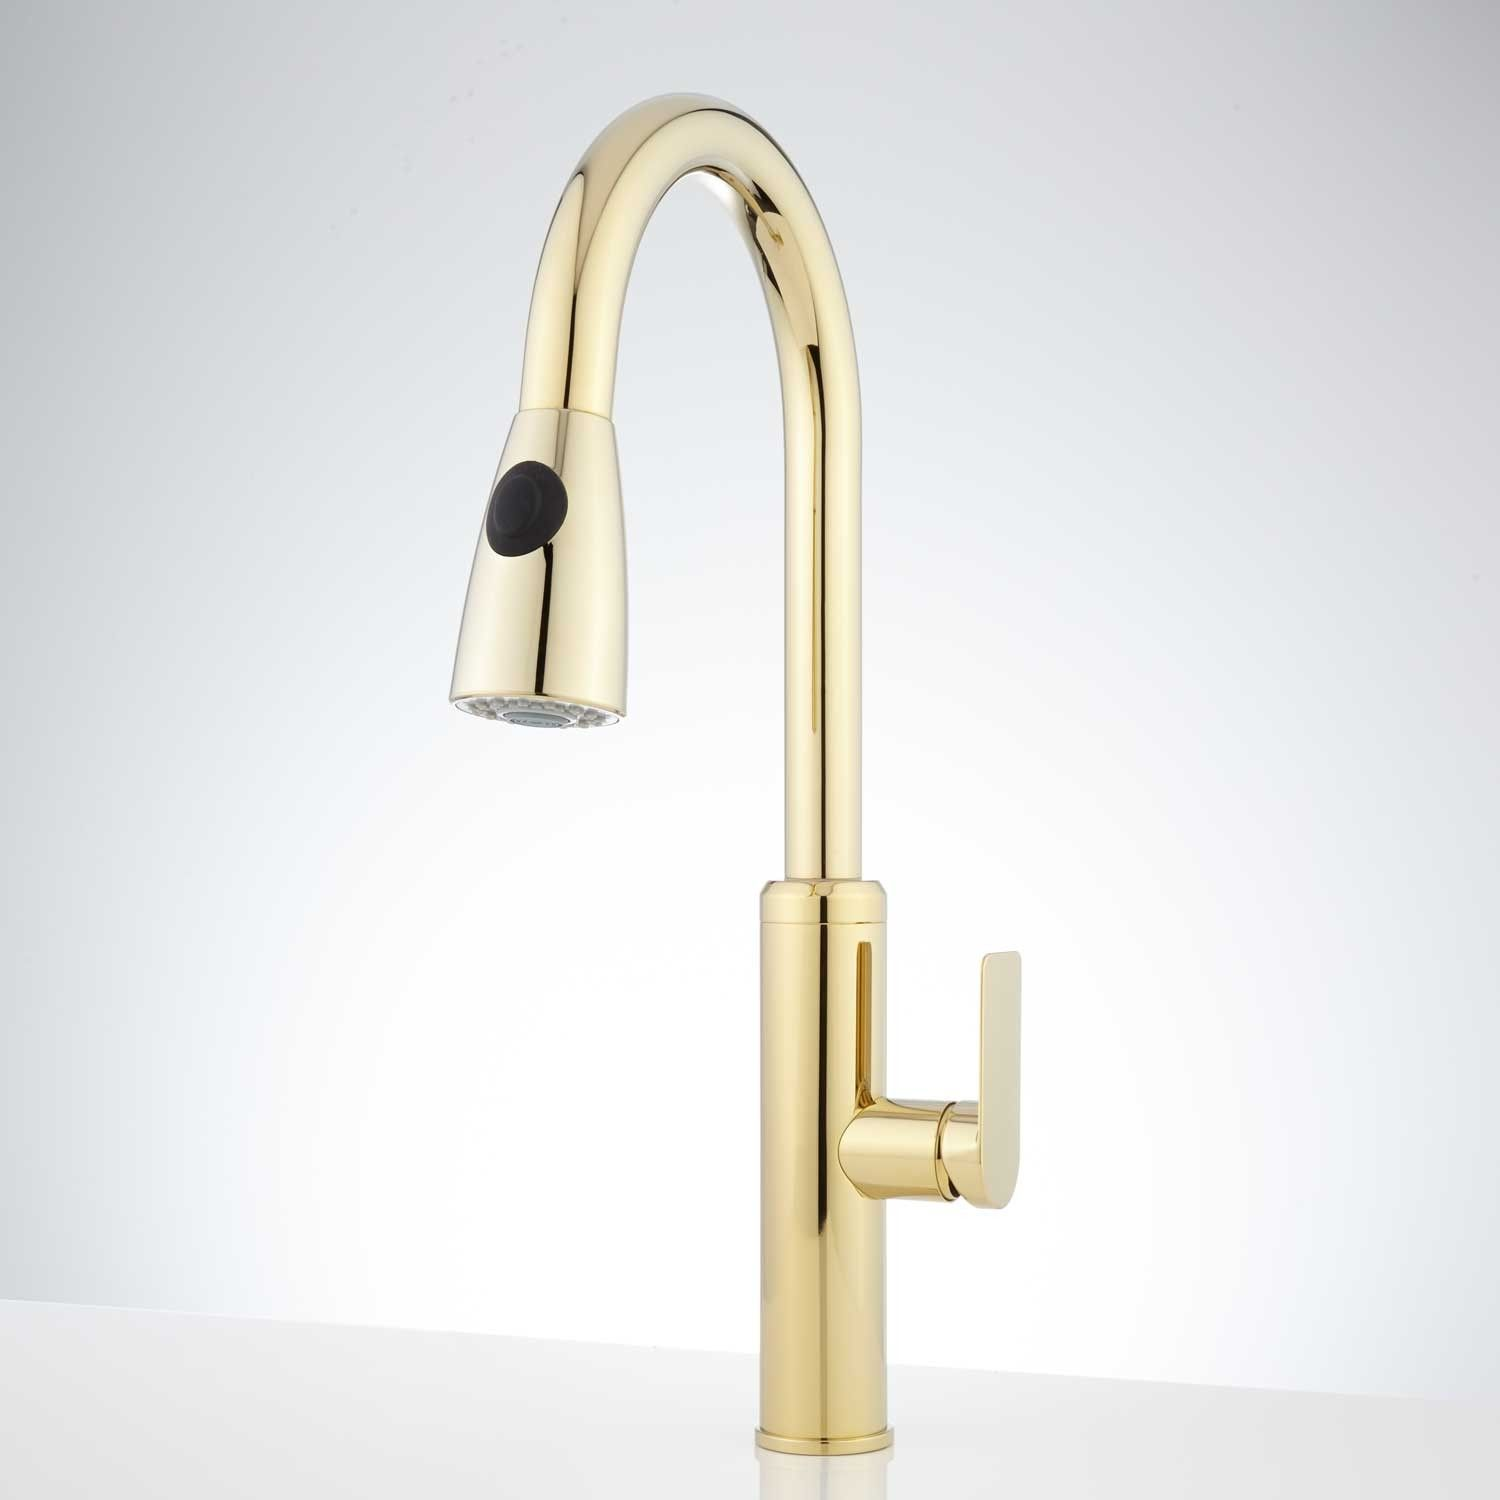 Pin On Gold Color Faucets Hardware